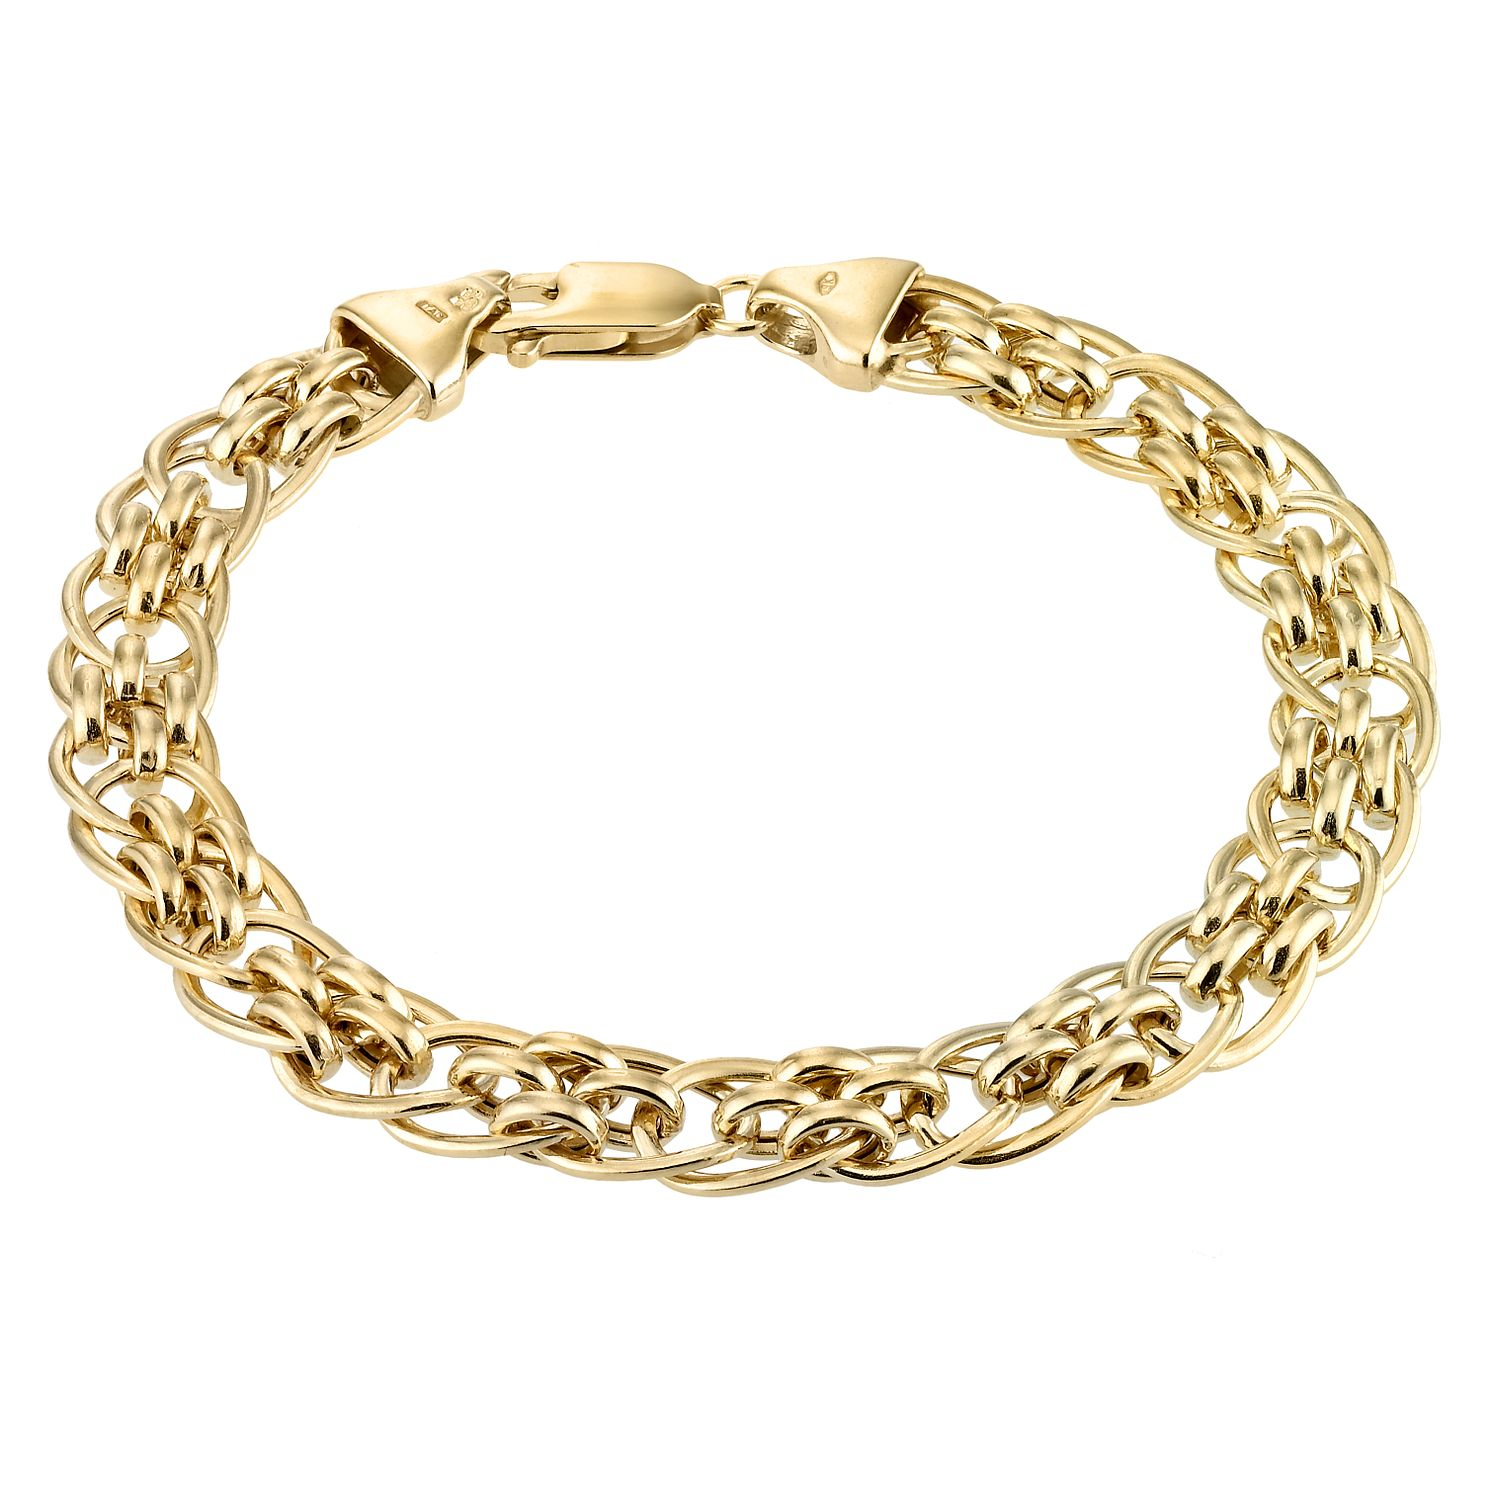 9ct Yellow Gold 7.5 inches Fancy Panther Chain Bracelet - Product number 1065637